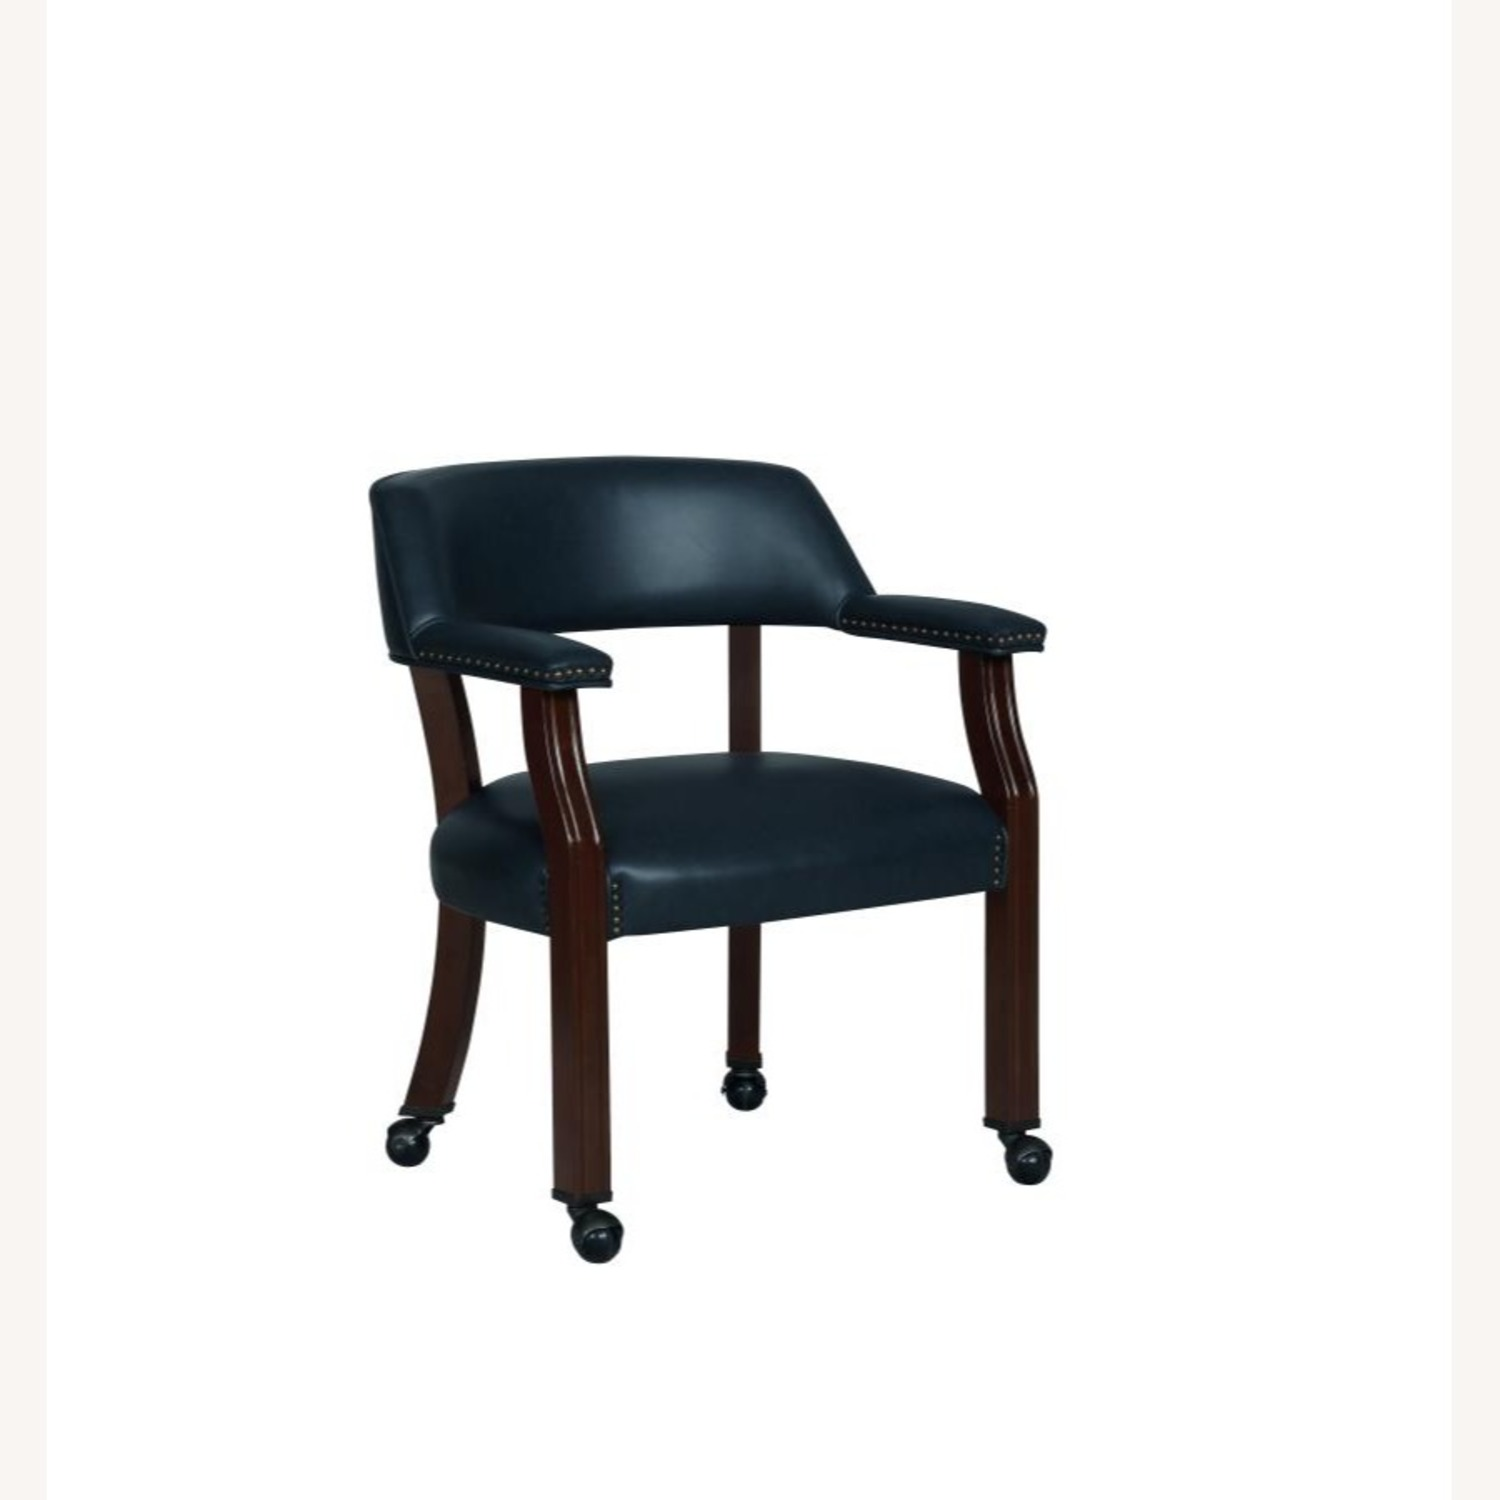 Guest Chair In Blue Leather W/ Wheeled Legs - image-0